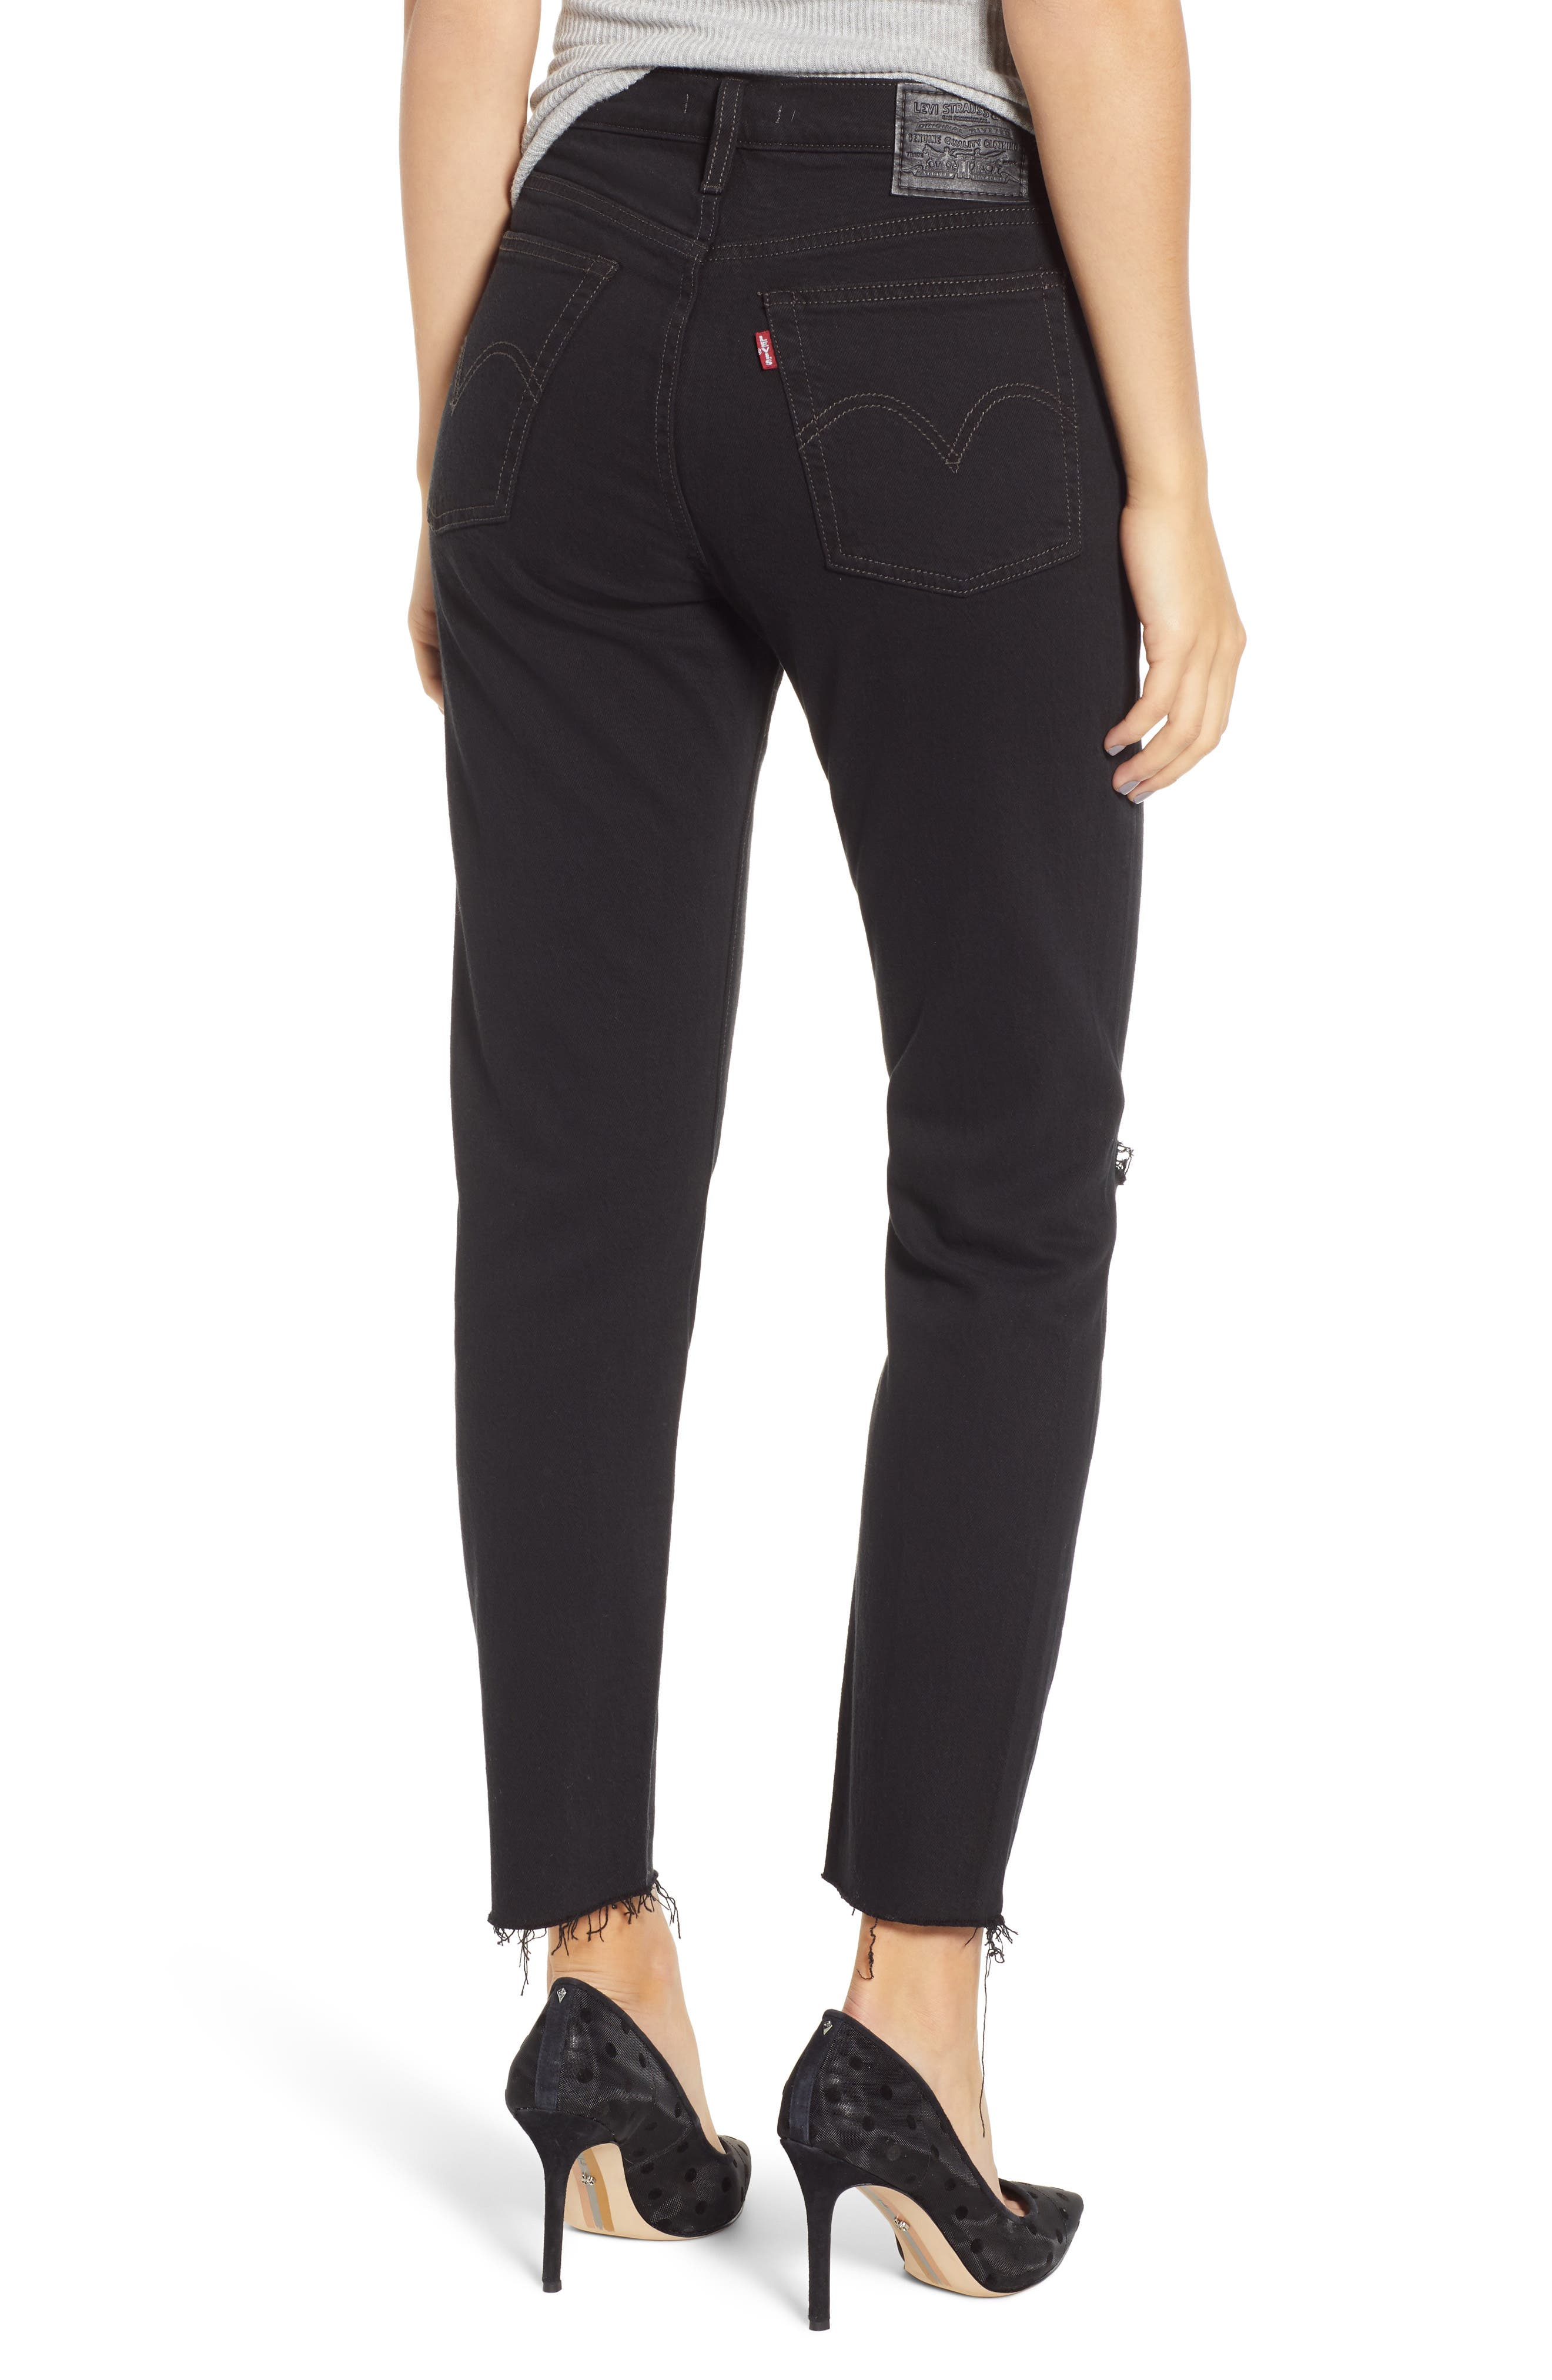 LEVI'S<SUP>®</SUP>, Wedgie Icon Fit High Waist Ripped Skinny Jeans, Alternate thumbnail 2, color, BLACK DESERT